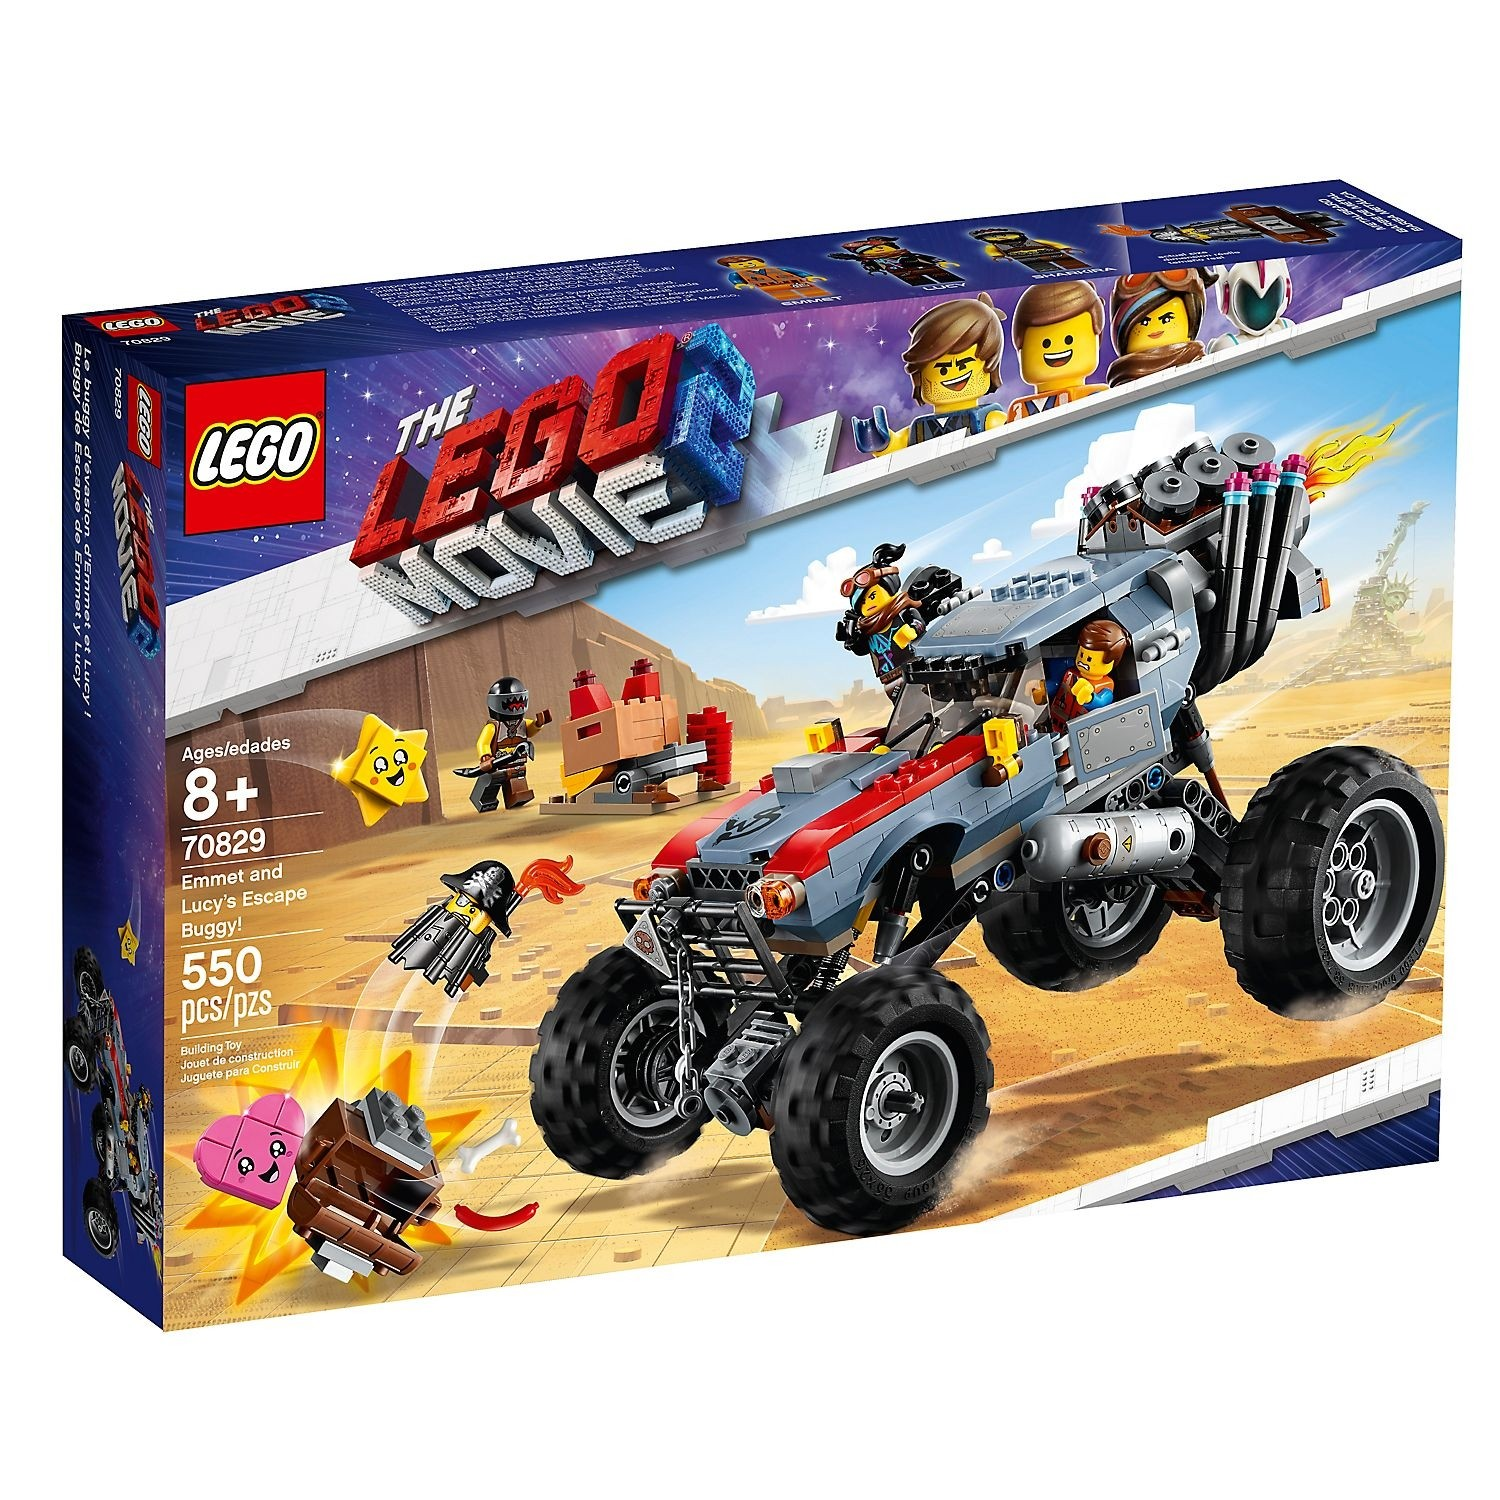 Lego the Movie Emmet and Lucy's Escape Buggy